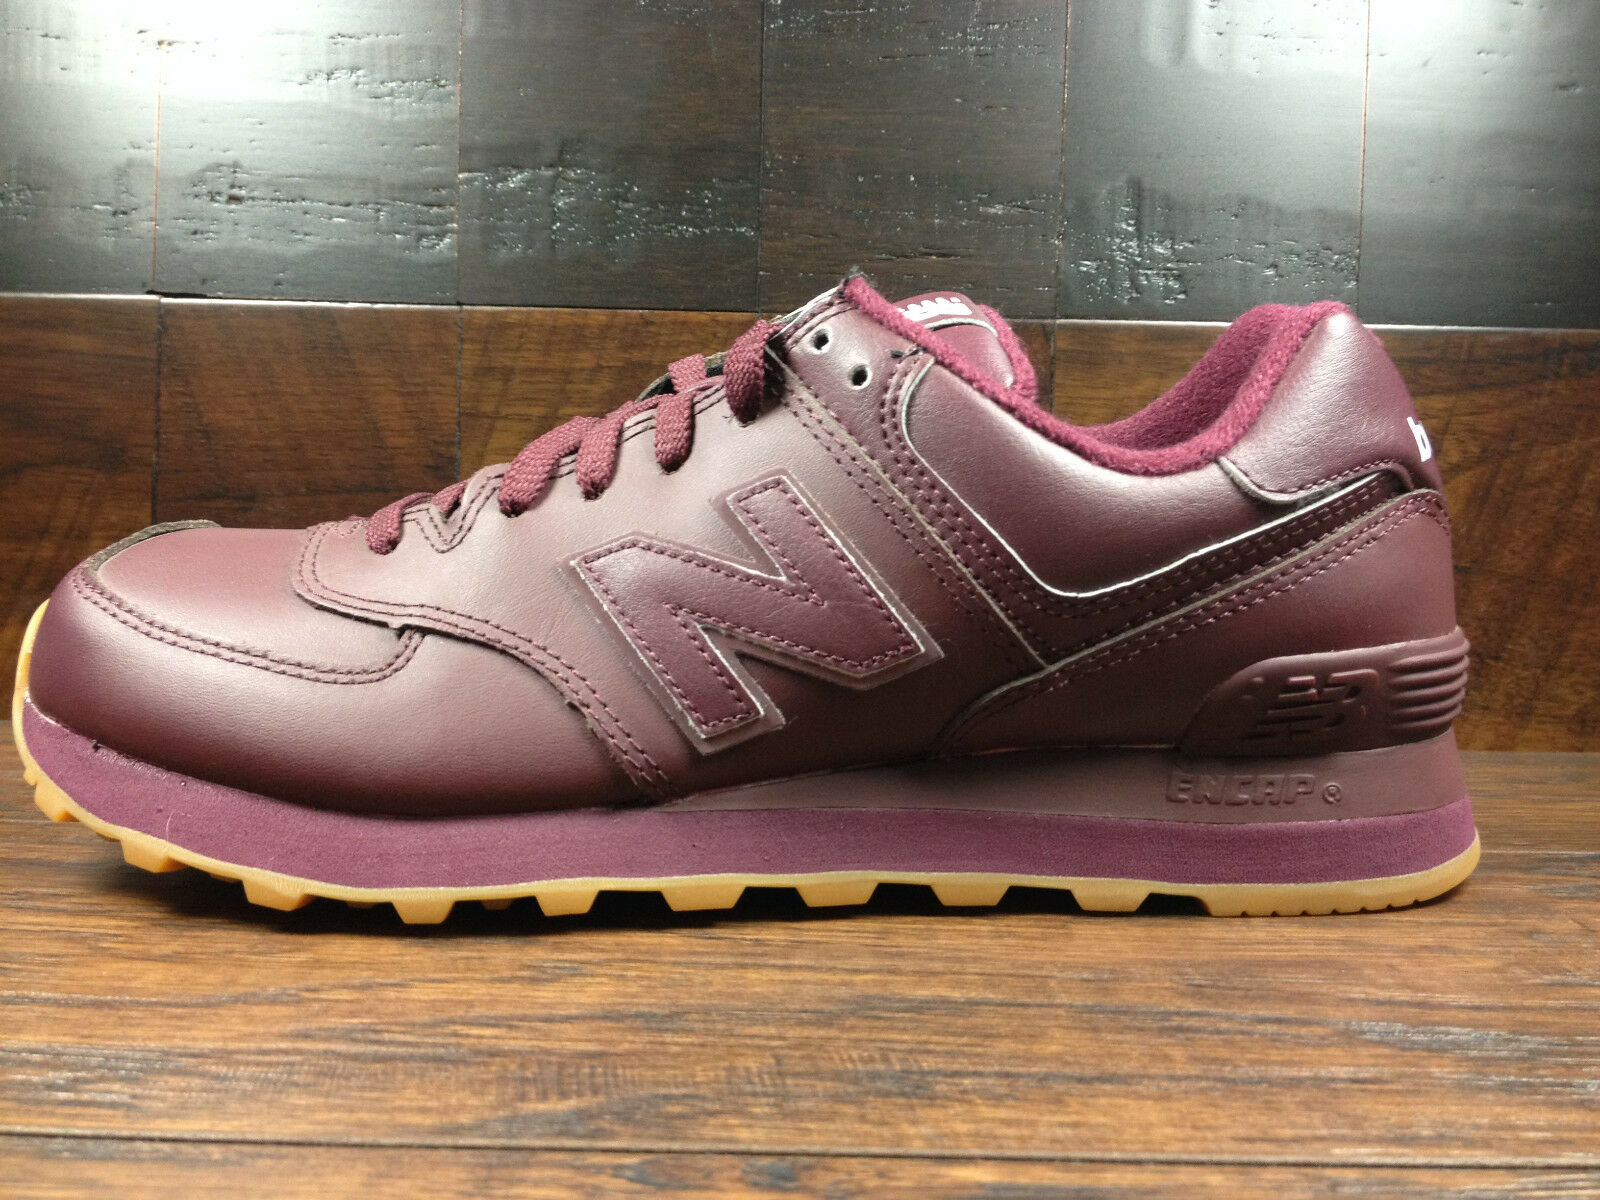 New Balance NB574AAB Classic Leather  (Burgundy   Gum) 574 Mens Size